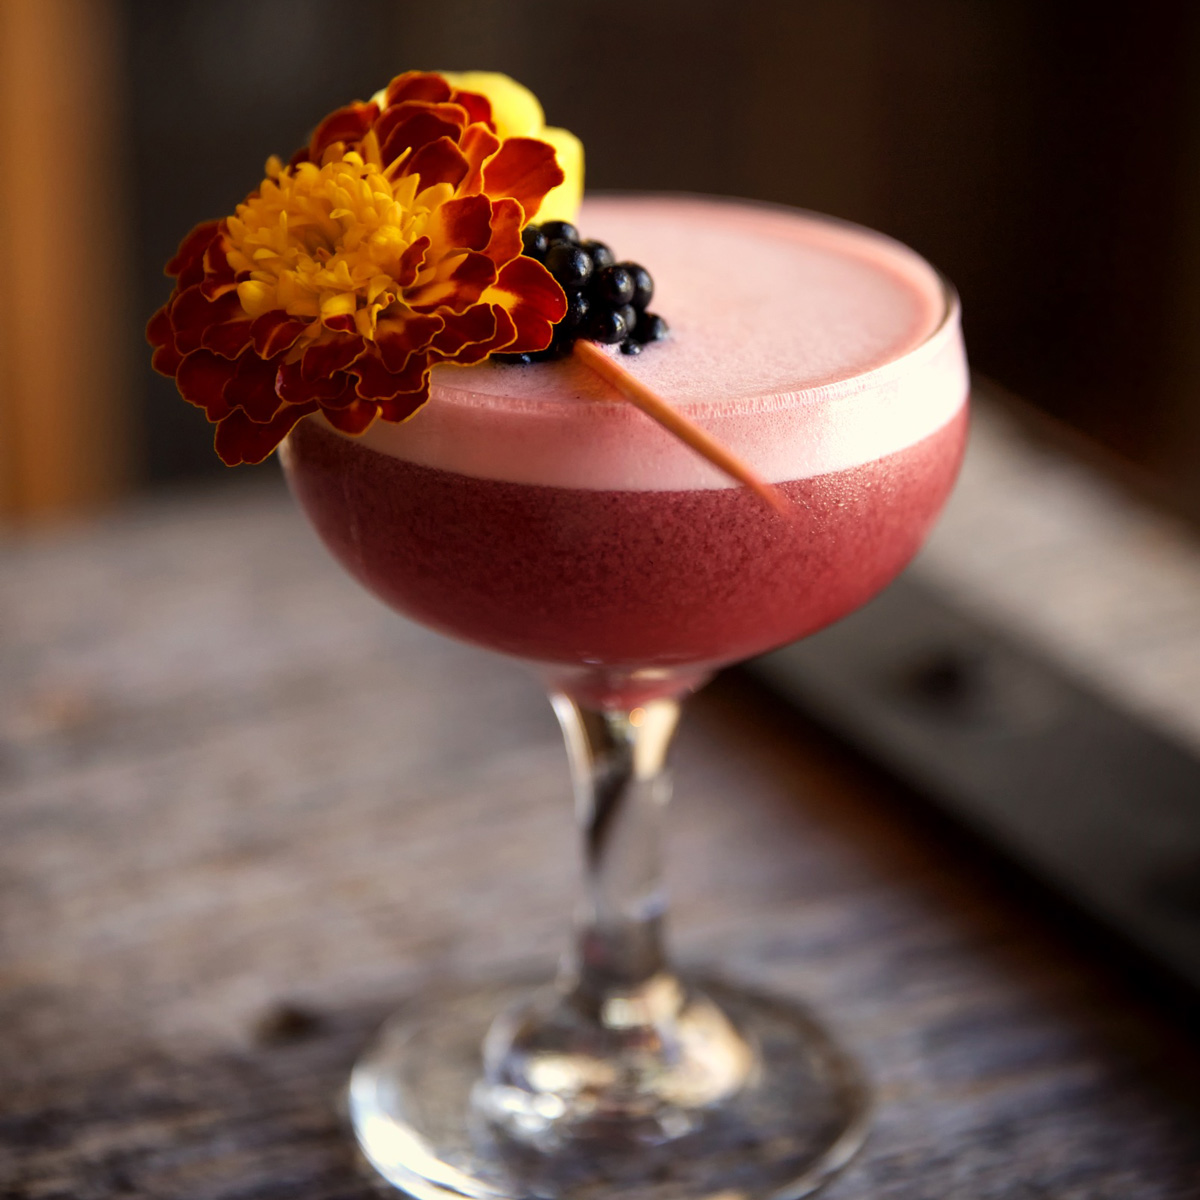 Where to Find America's Best New Mocktails